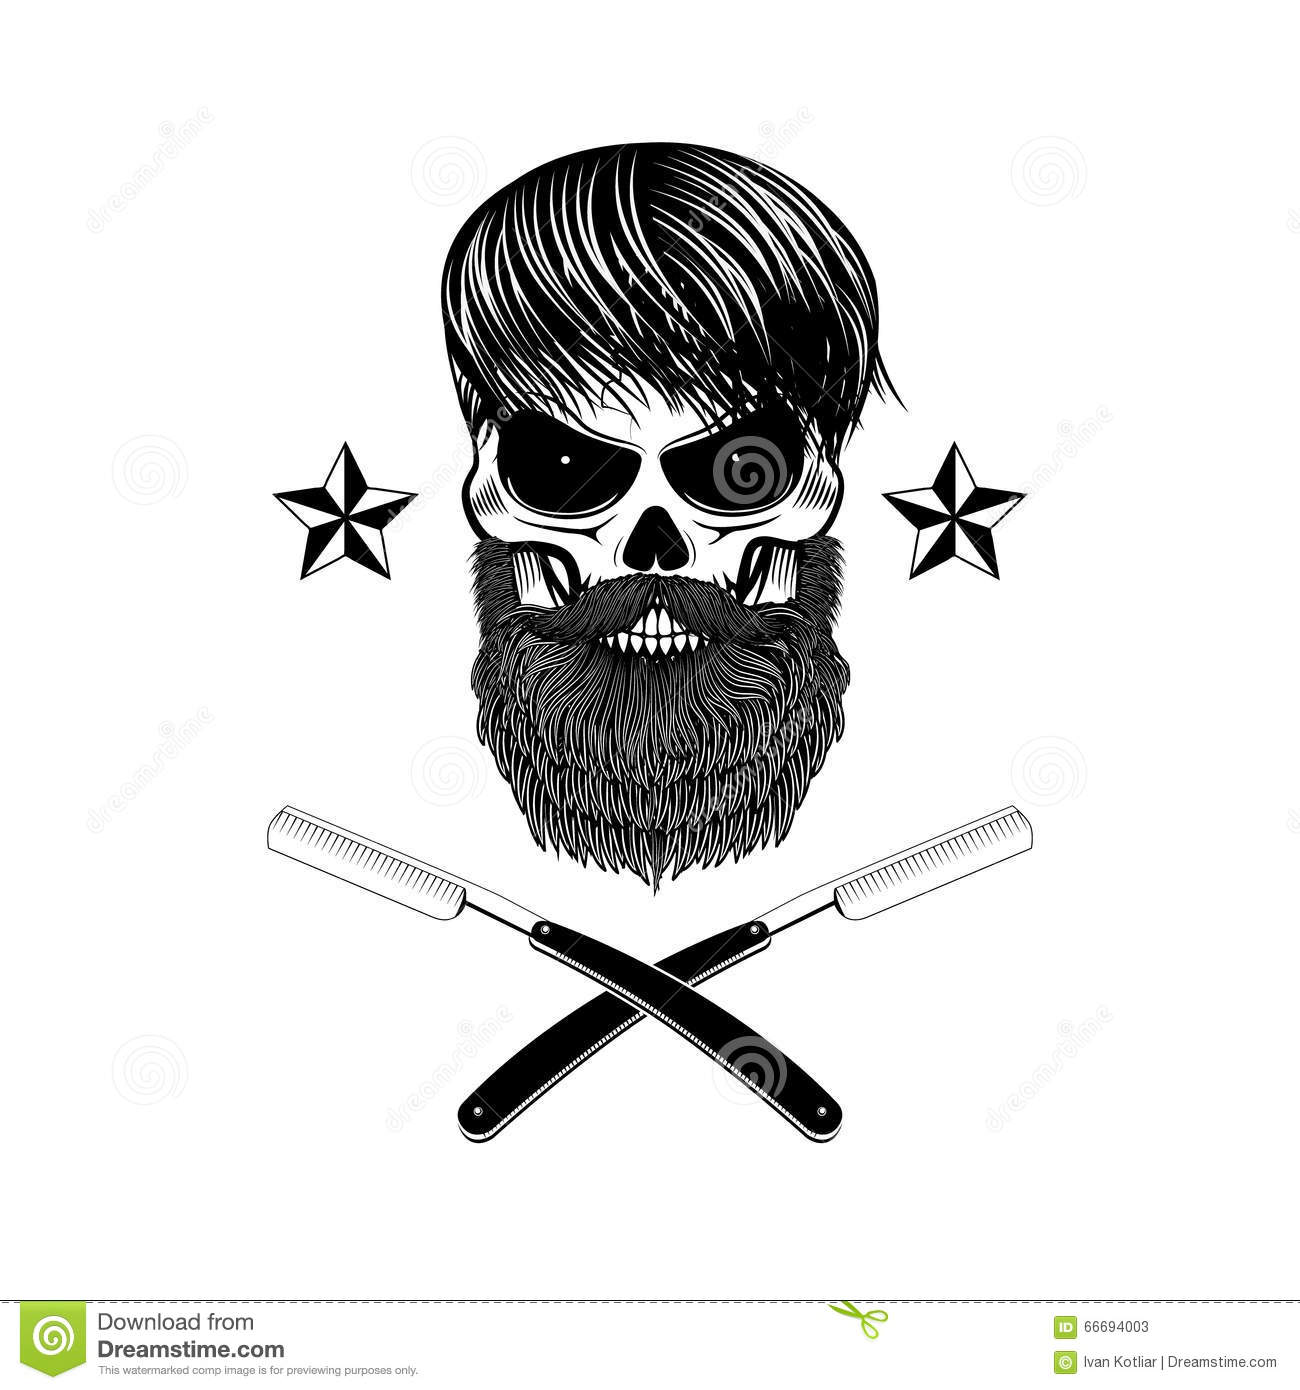 bearded skull with blades stock vector image 66694003